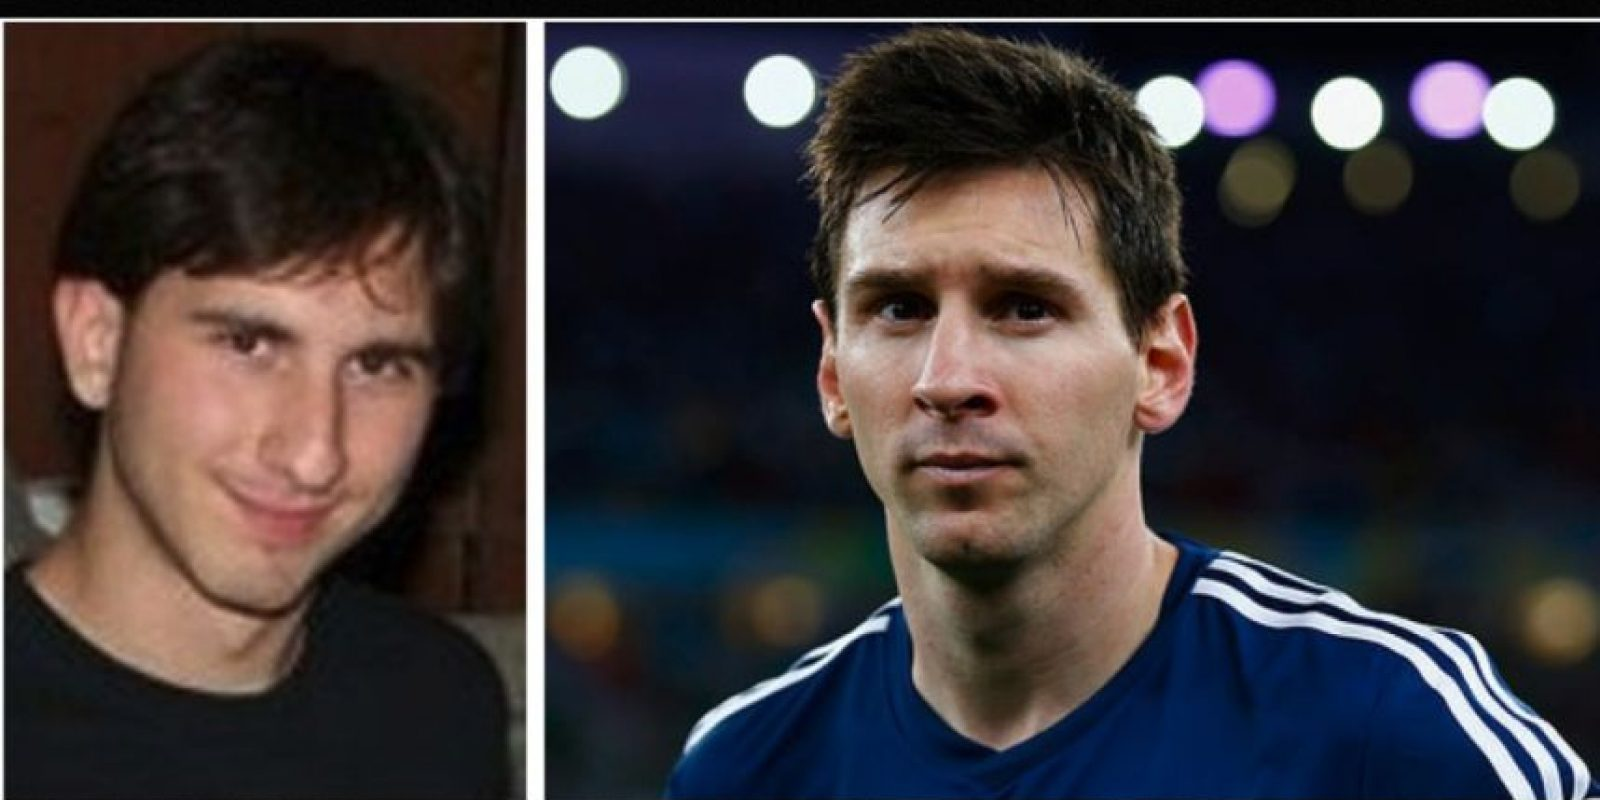 Igual a Lionel Messi Foto: Reddit/Getty